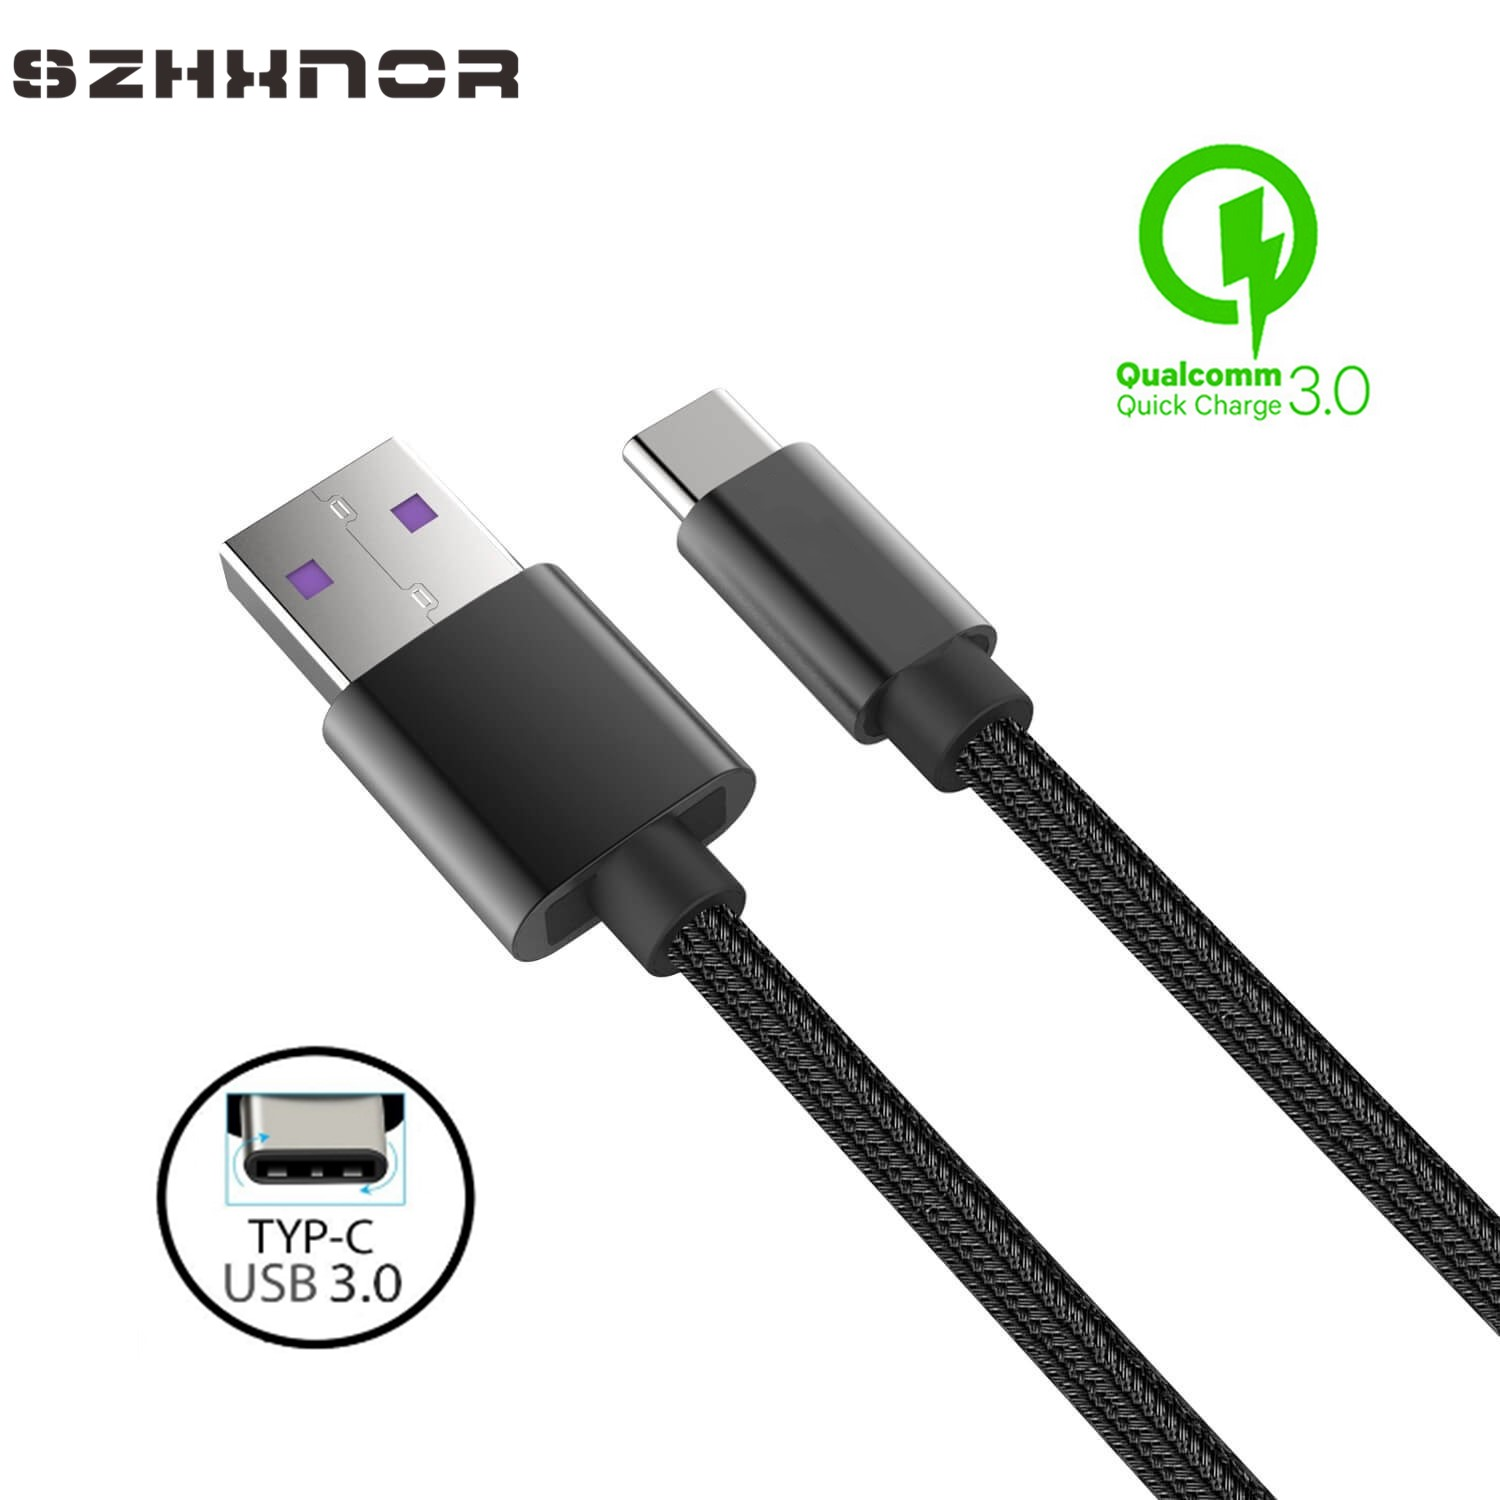 2pcs Type-c Usb C To Micro Usb Converter Charging Adapter For Sony L1 L2 Xa1 Xa2 Xz Xz1 Xz2 Xz3 Compact Ultar Plus Premium Mobile Phone Accessories